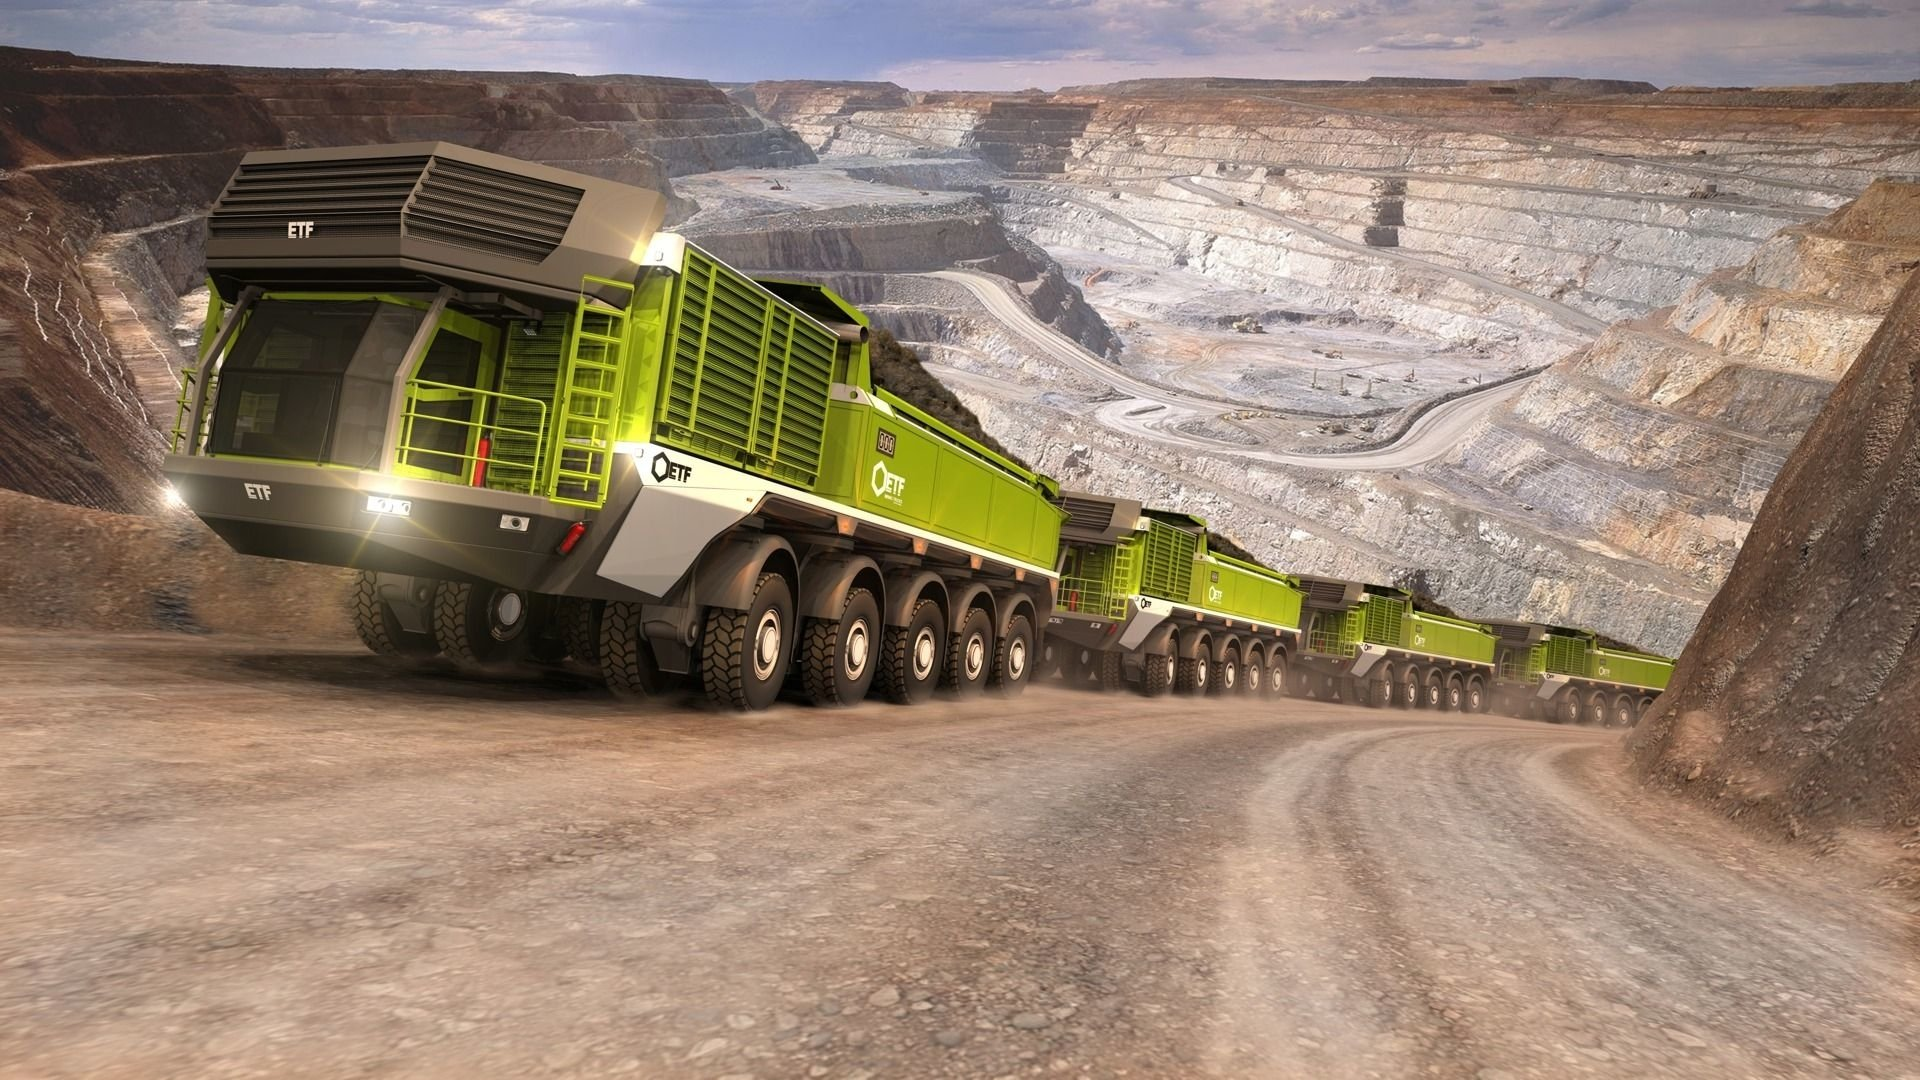 Etf mt 240 mining truck hd wallpaper background image 1920x1080 id 785339 wallpaper abyss - Mining images hd ...